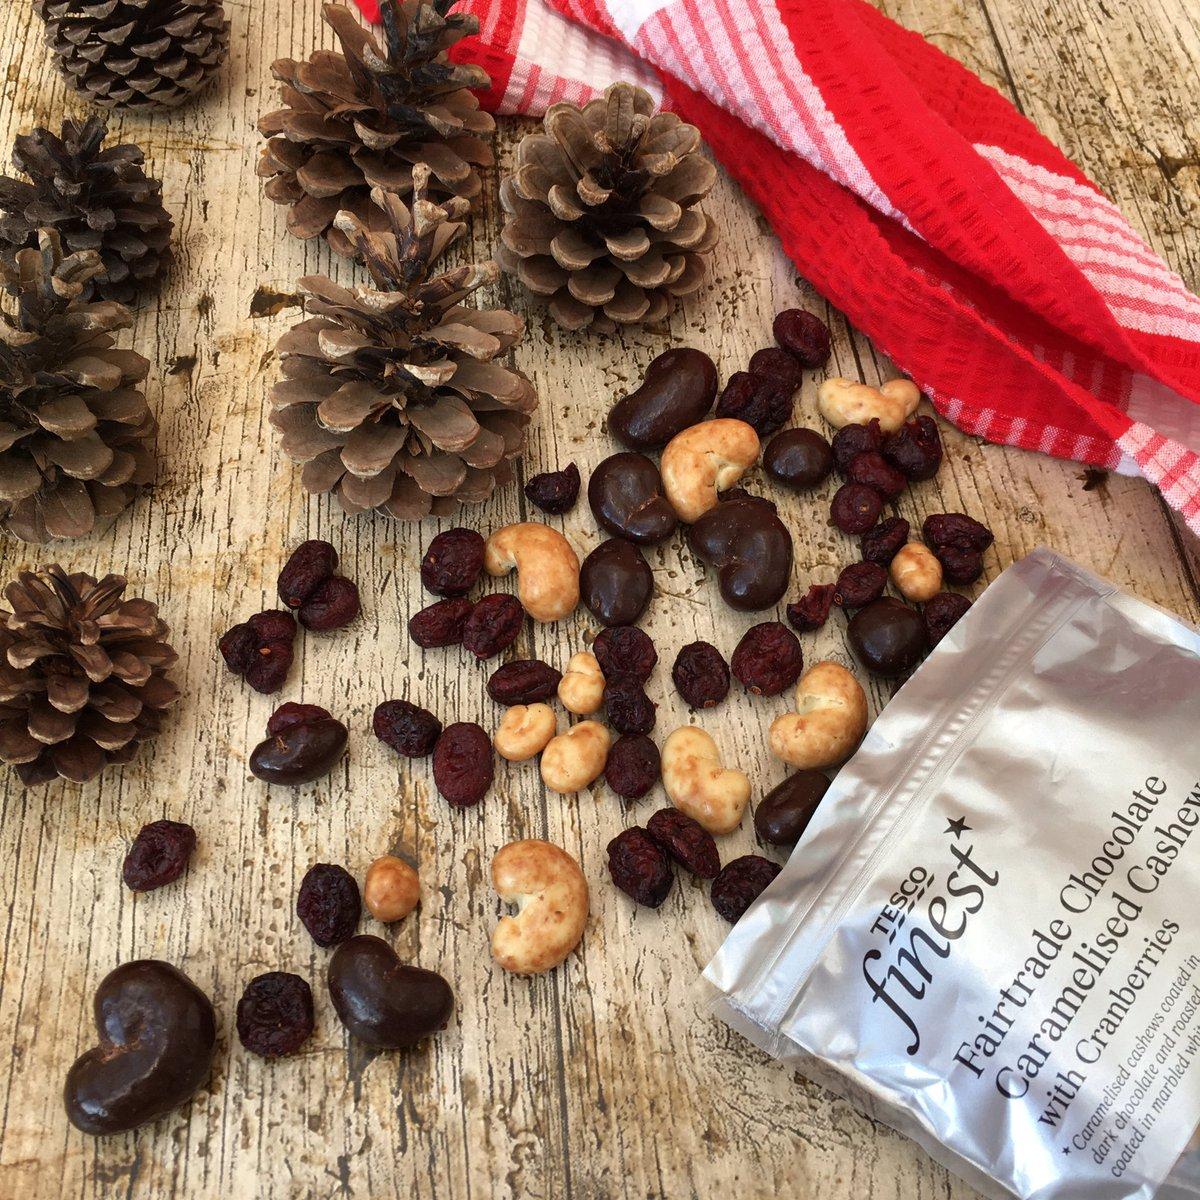 (AD) Can't stop snacking on this fabulous combination of caramelised + roasted cashews covered in chocolate along with cranberries. Perfect for upcoming festive season. Fairtrade nuts help to boost income for smallholder farmers around the world.  #TescoFinest #LiberatingLives